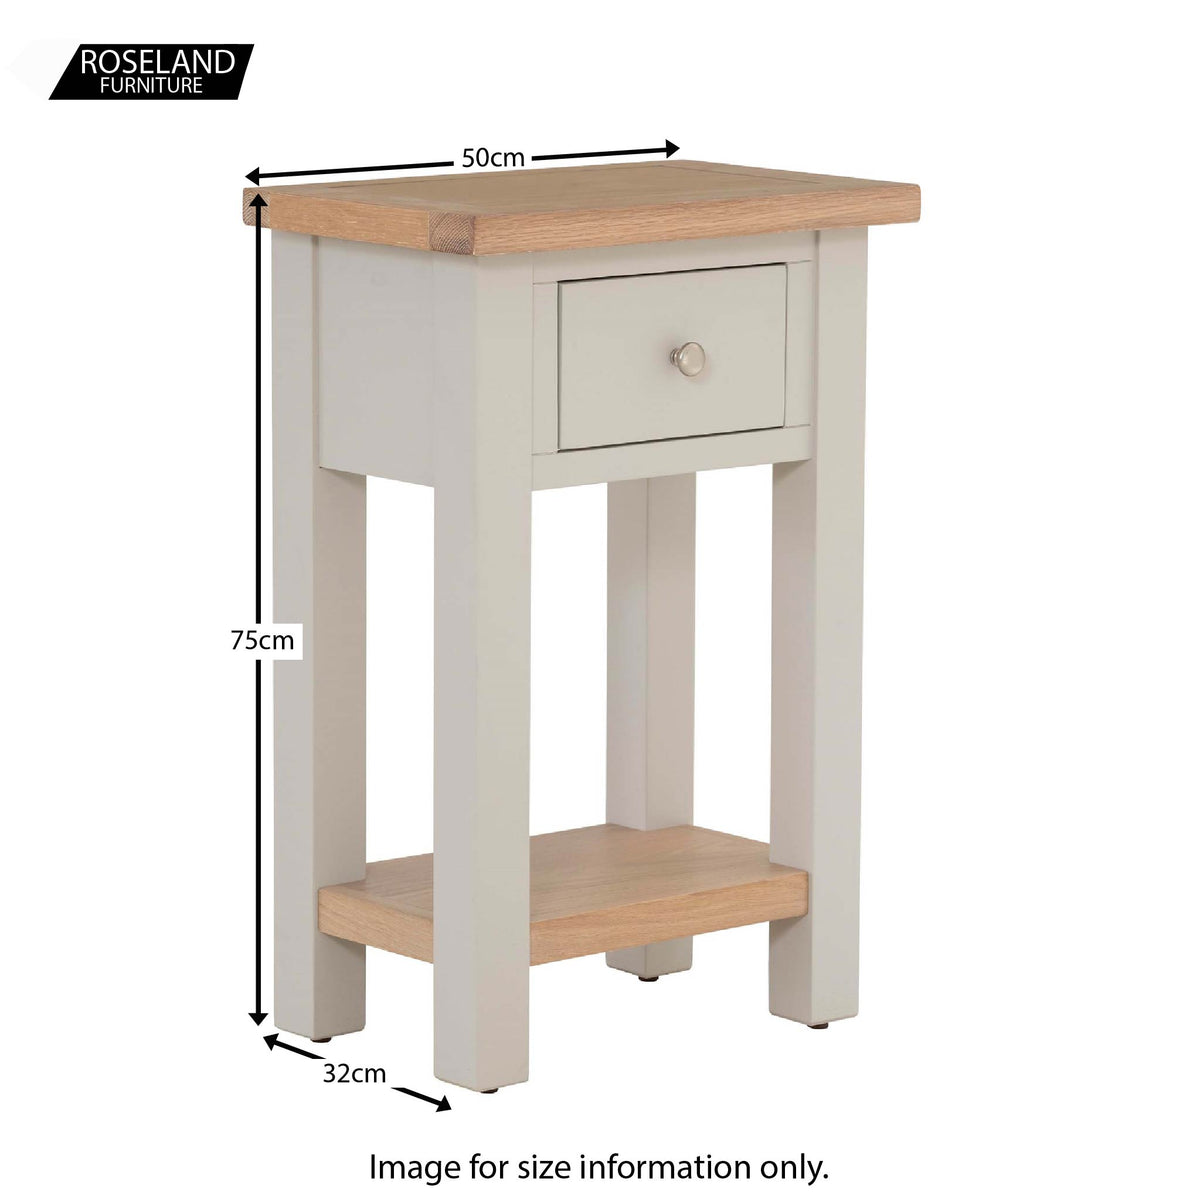 Dimensions for the Charlestown Grey Telephone Table with Oak Top from Roseland Furniture